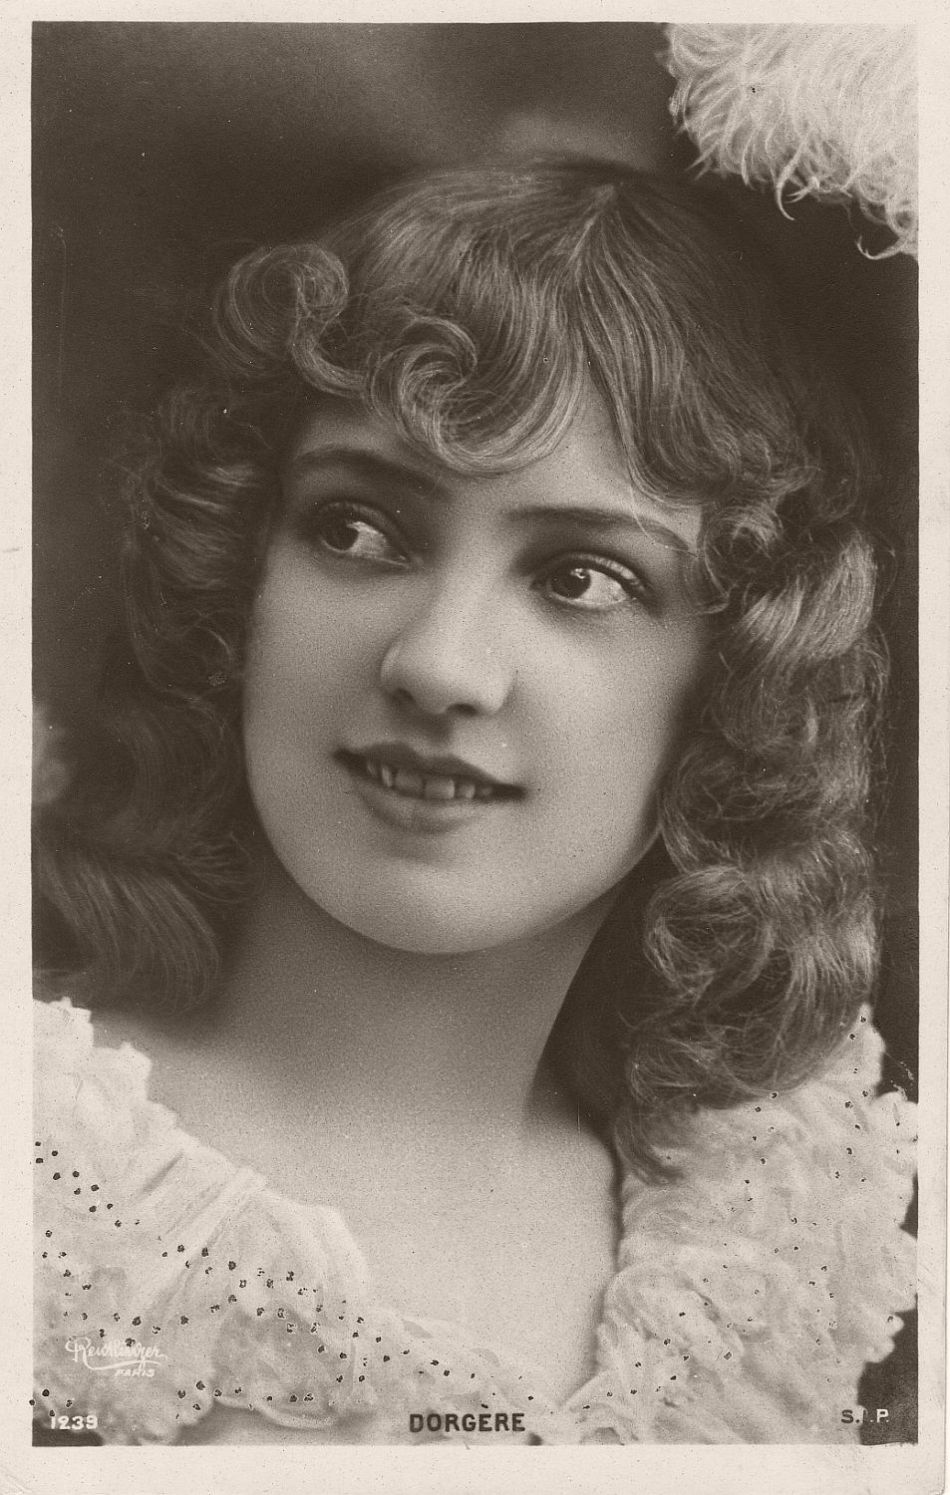 Arlette Dorgère (born Anna Mathilde Irma Jouve; 1880 – 1965) was a French actress, dancer and singer. She was represented on a large number of postcards of the Belle Époque and also a model for posters.